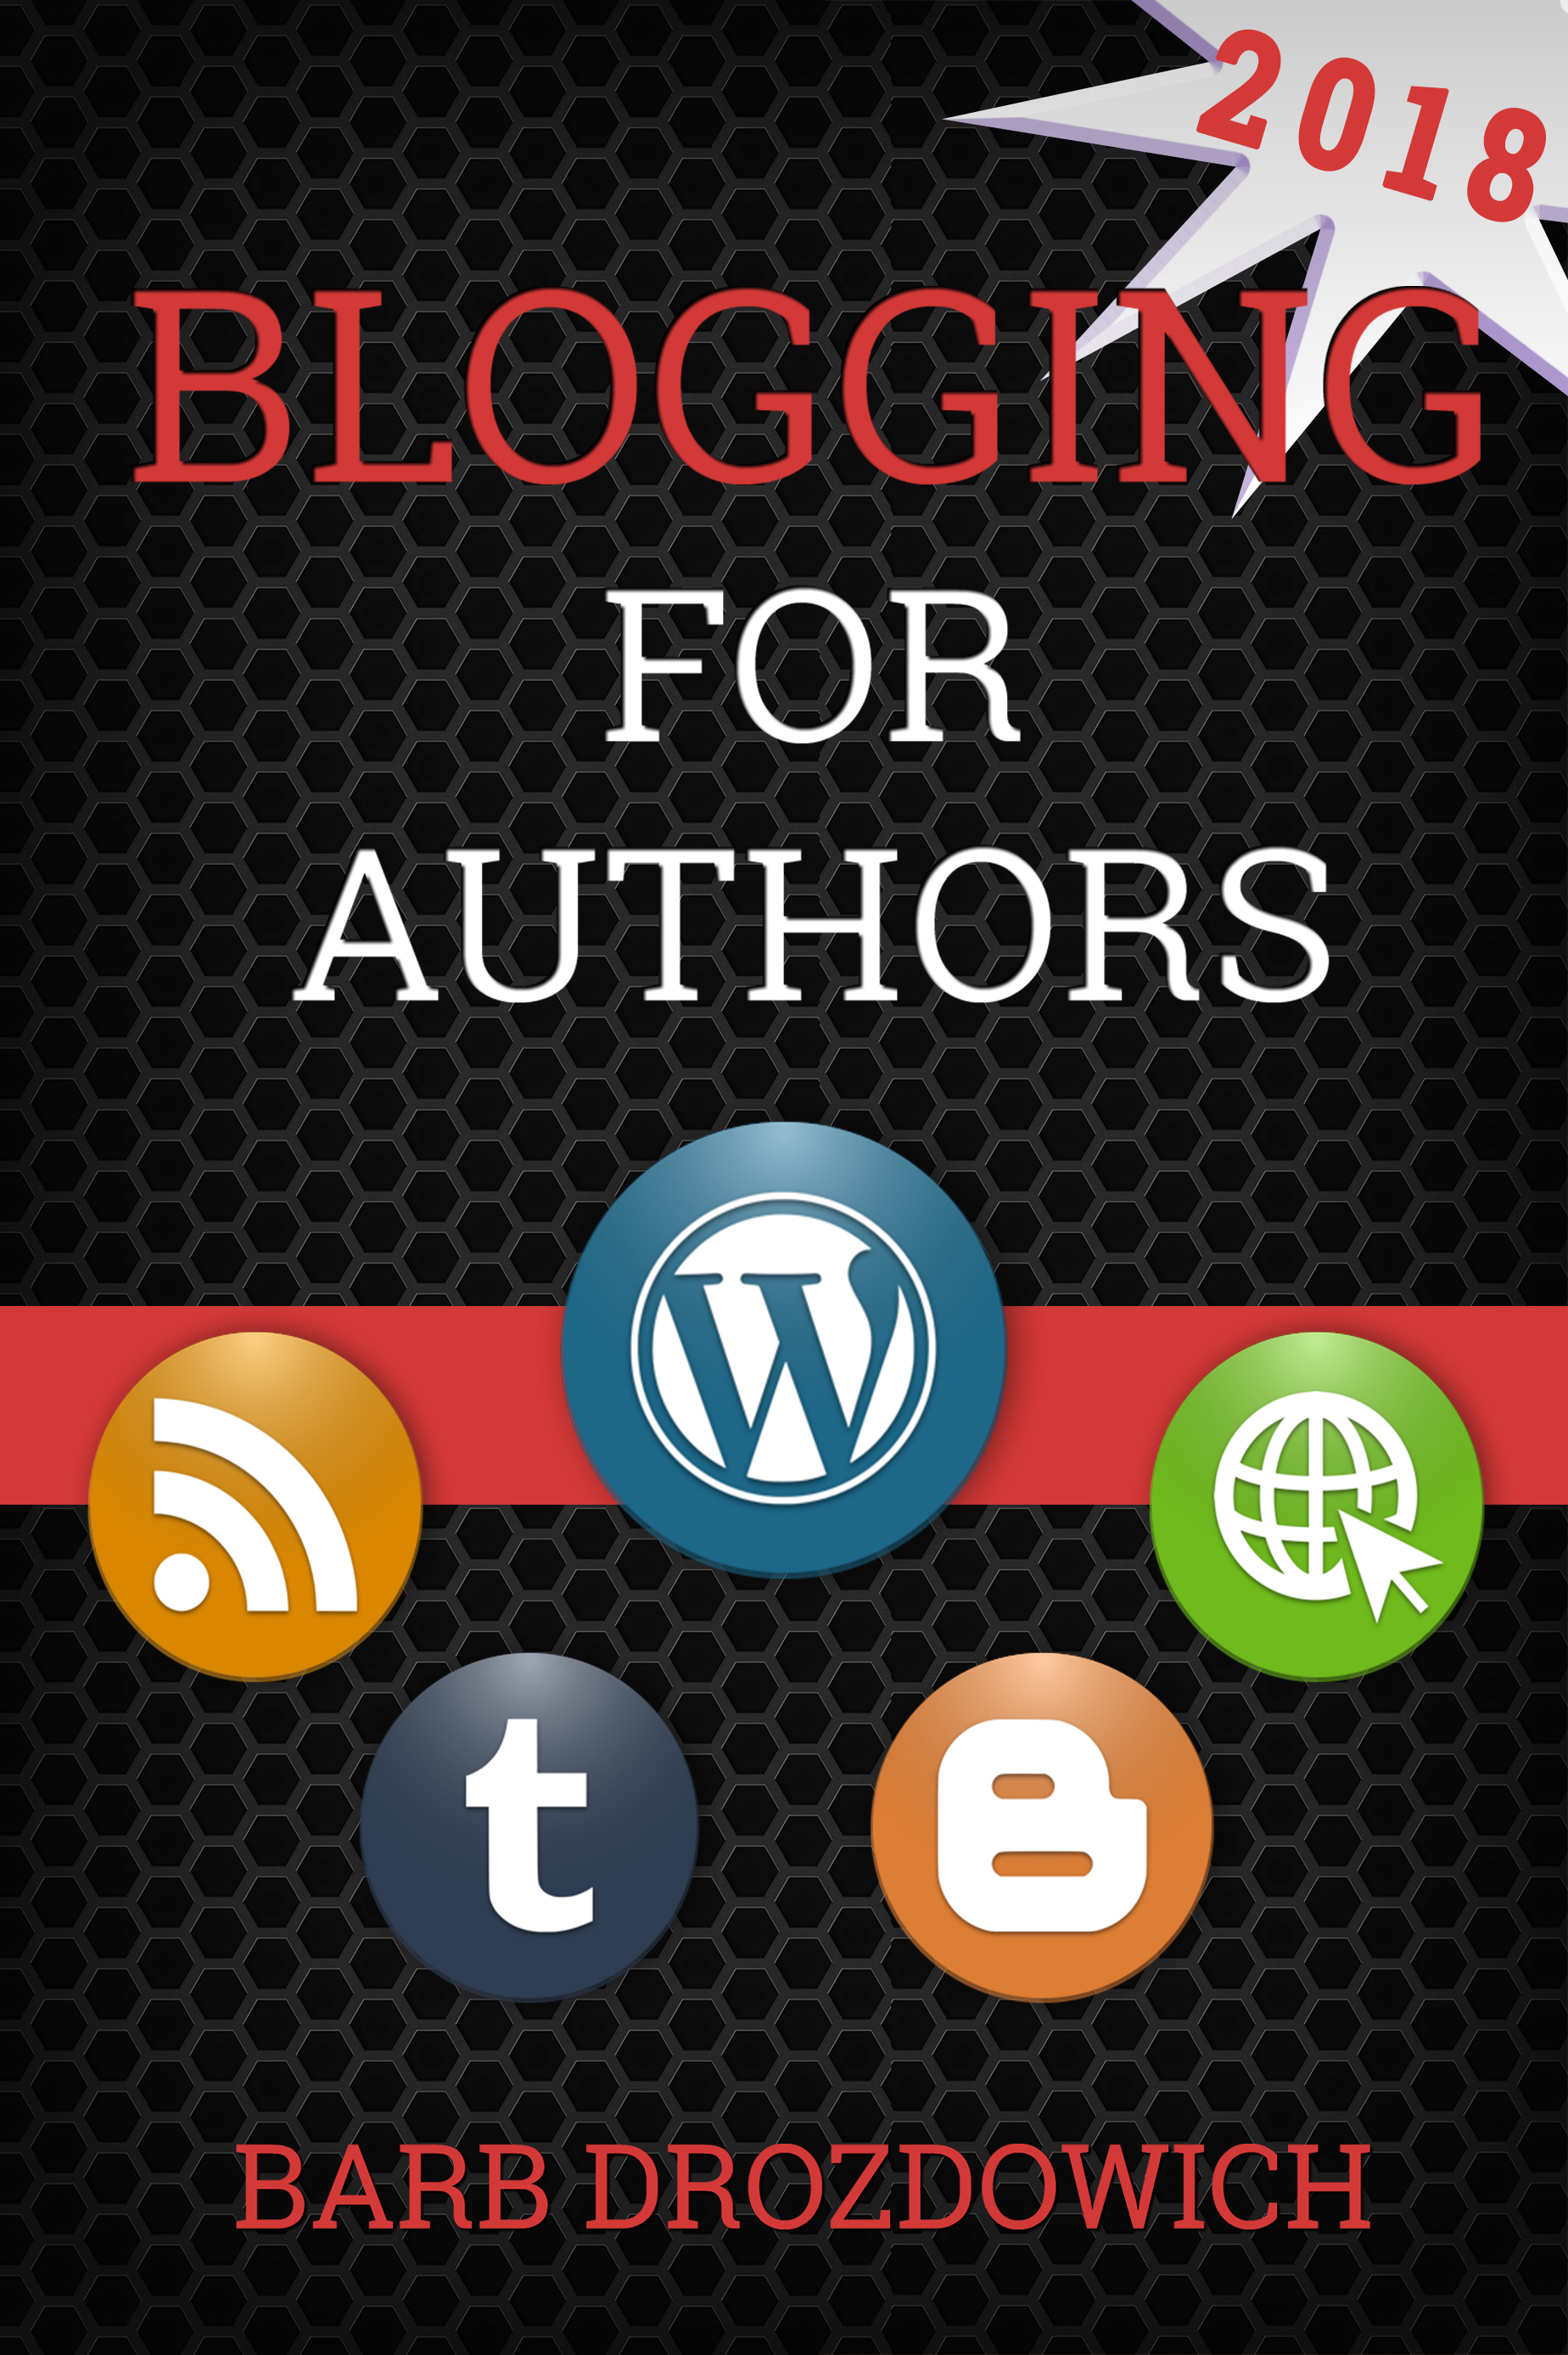 2018 Blogging For Authors